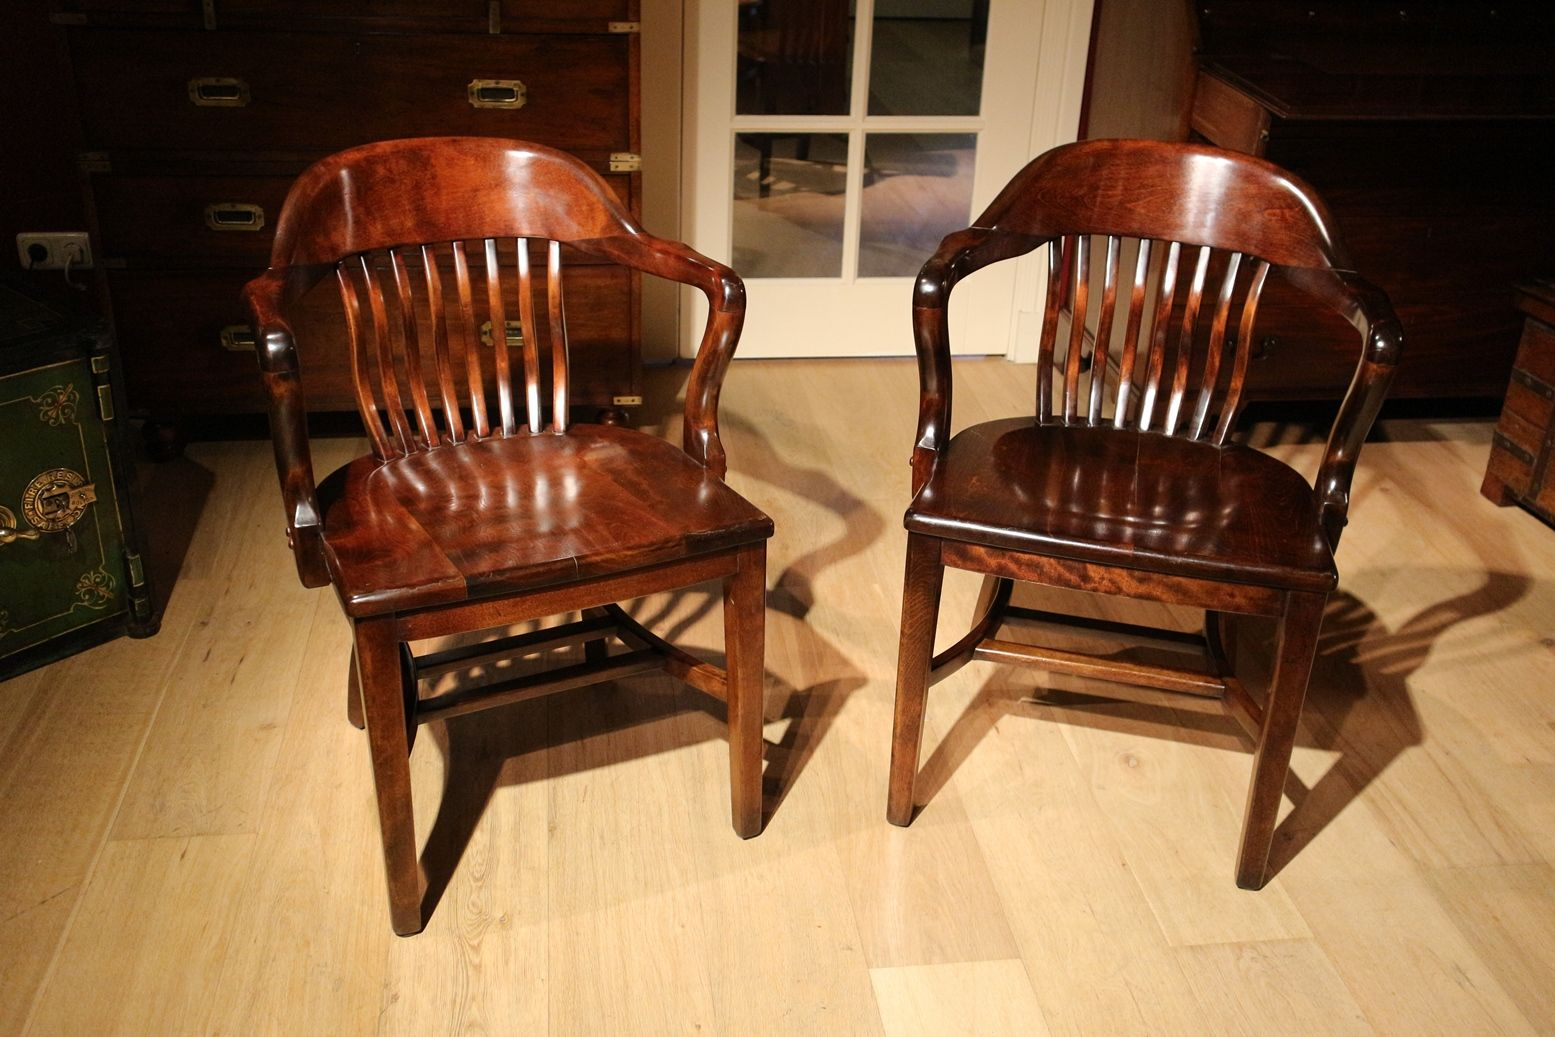 Antique Mahogany Office Chairs, Set of 2